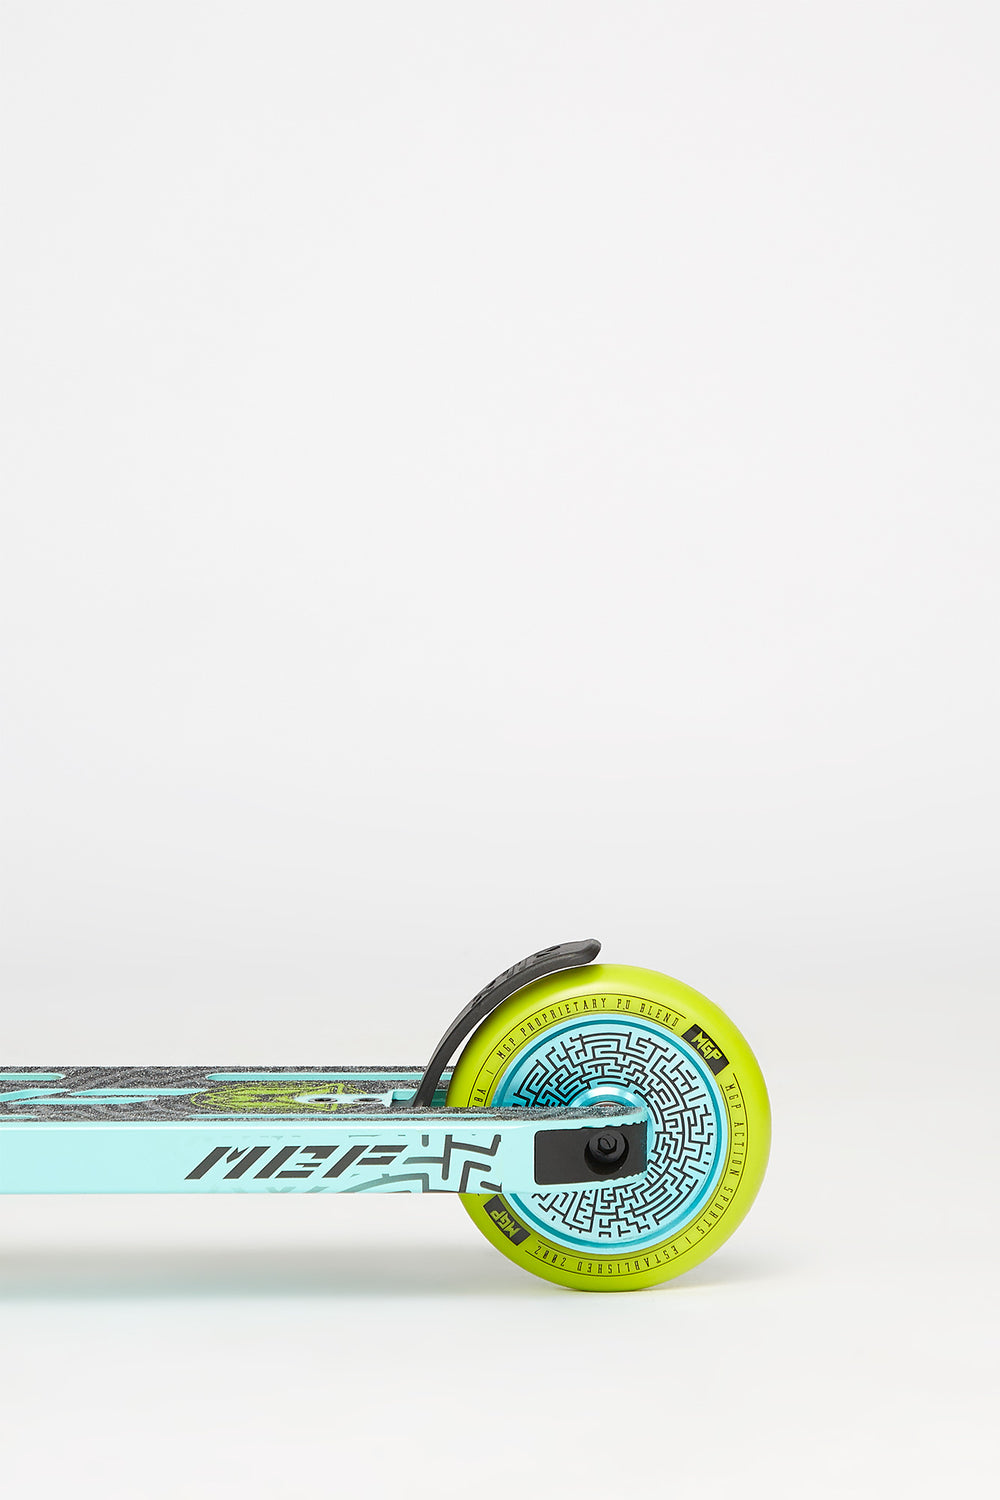 Madd Gear Lime VX9 Scooter Aqua